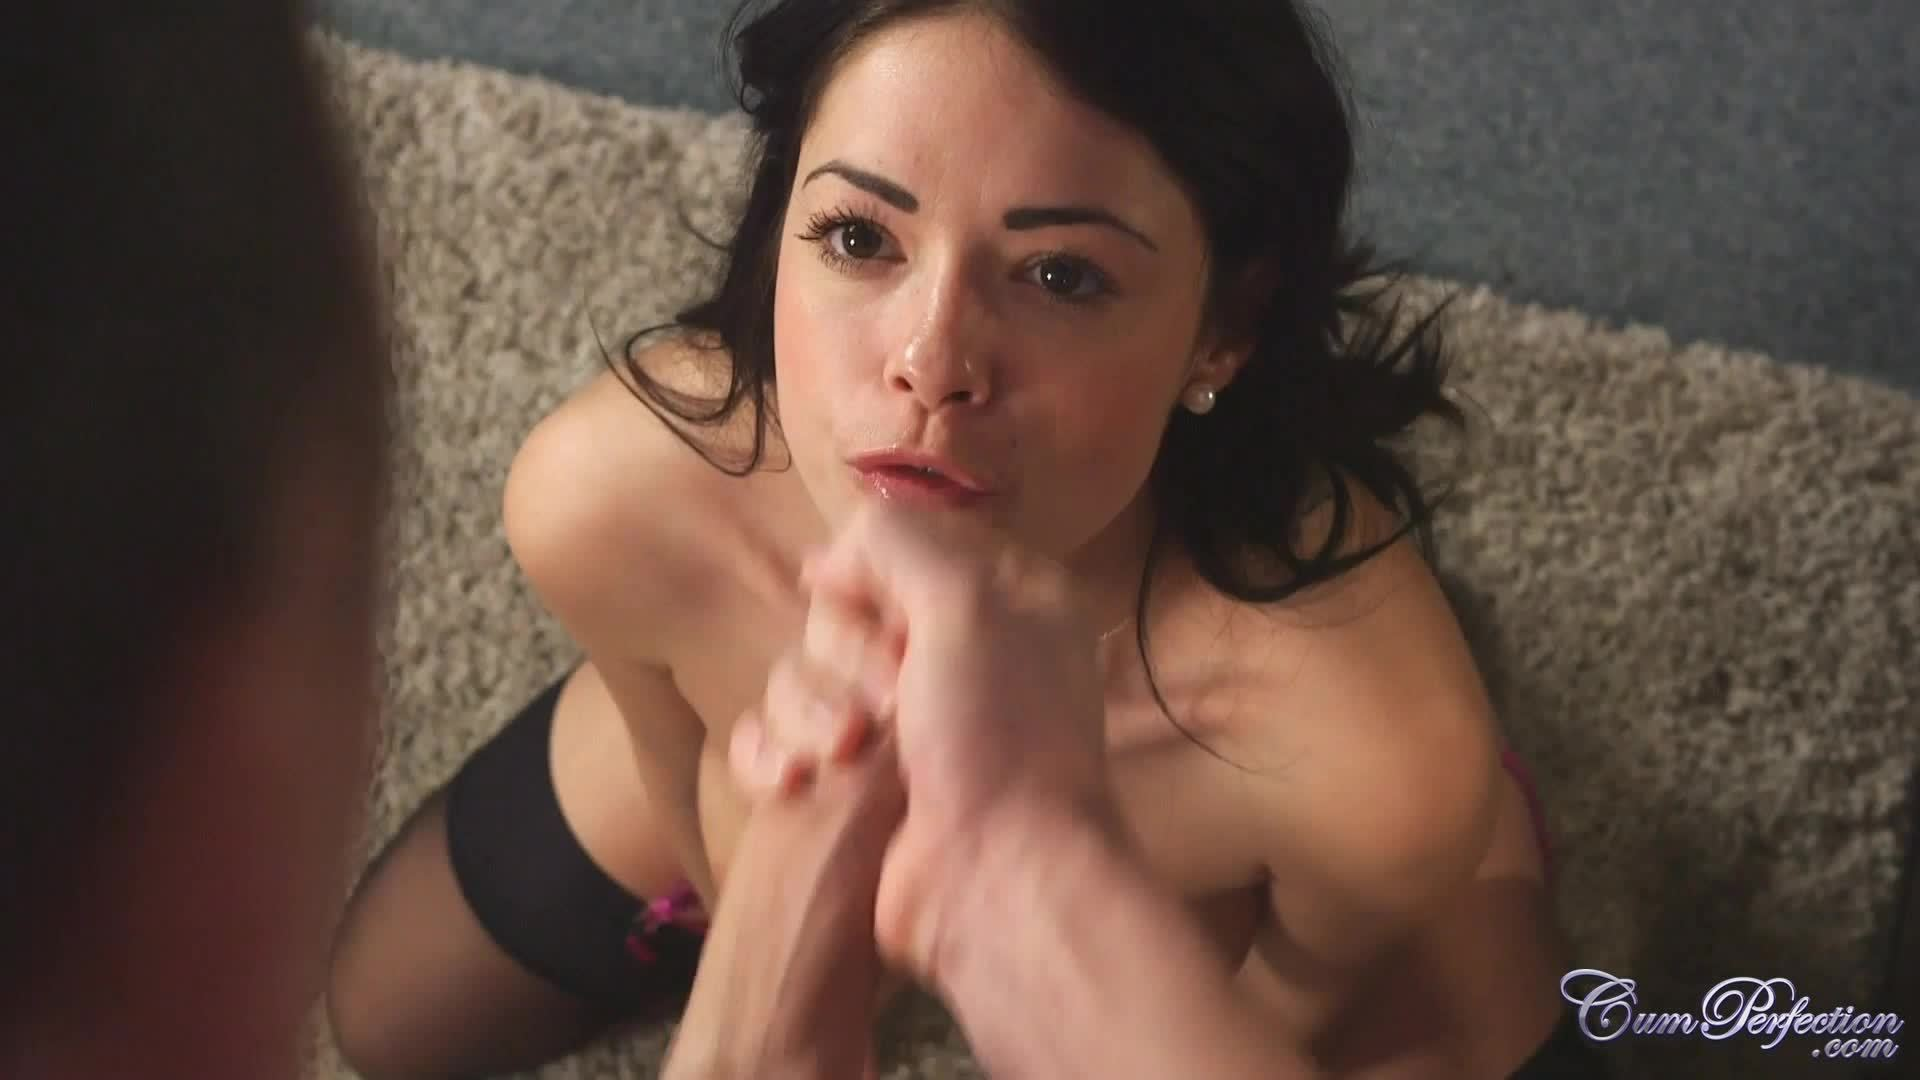 free legs behind porn pics and legs behind pictures